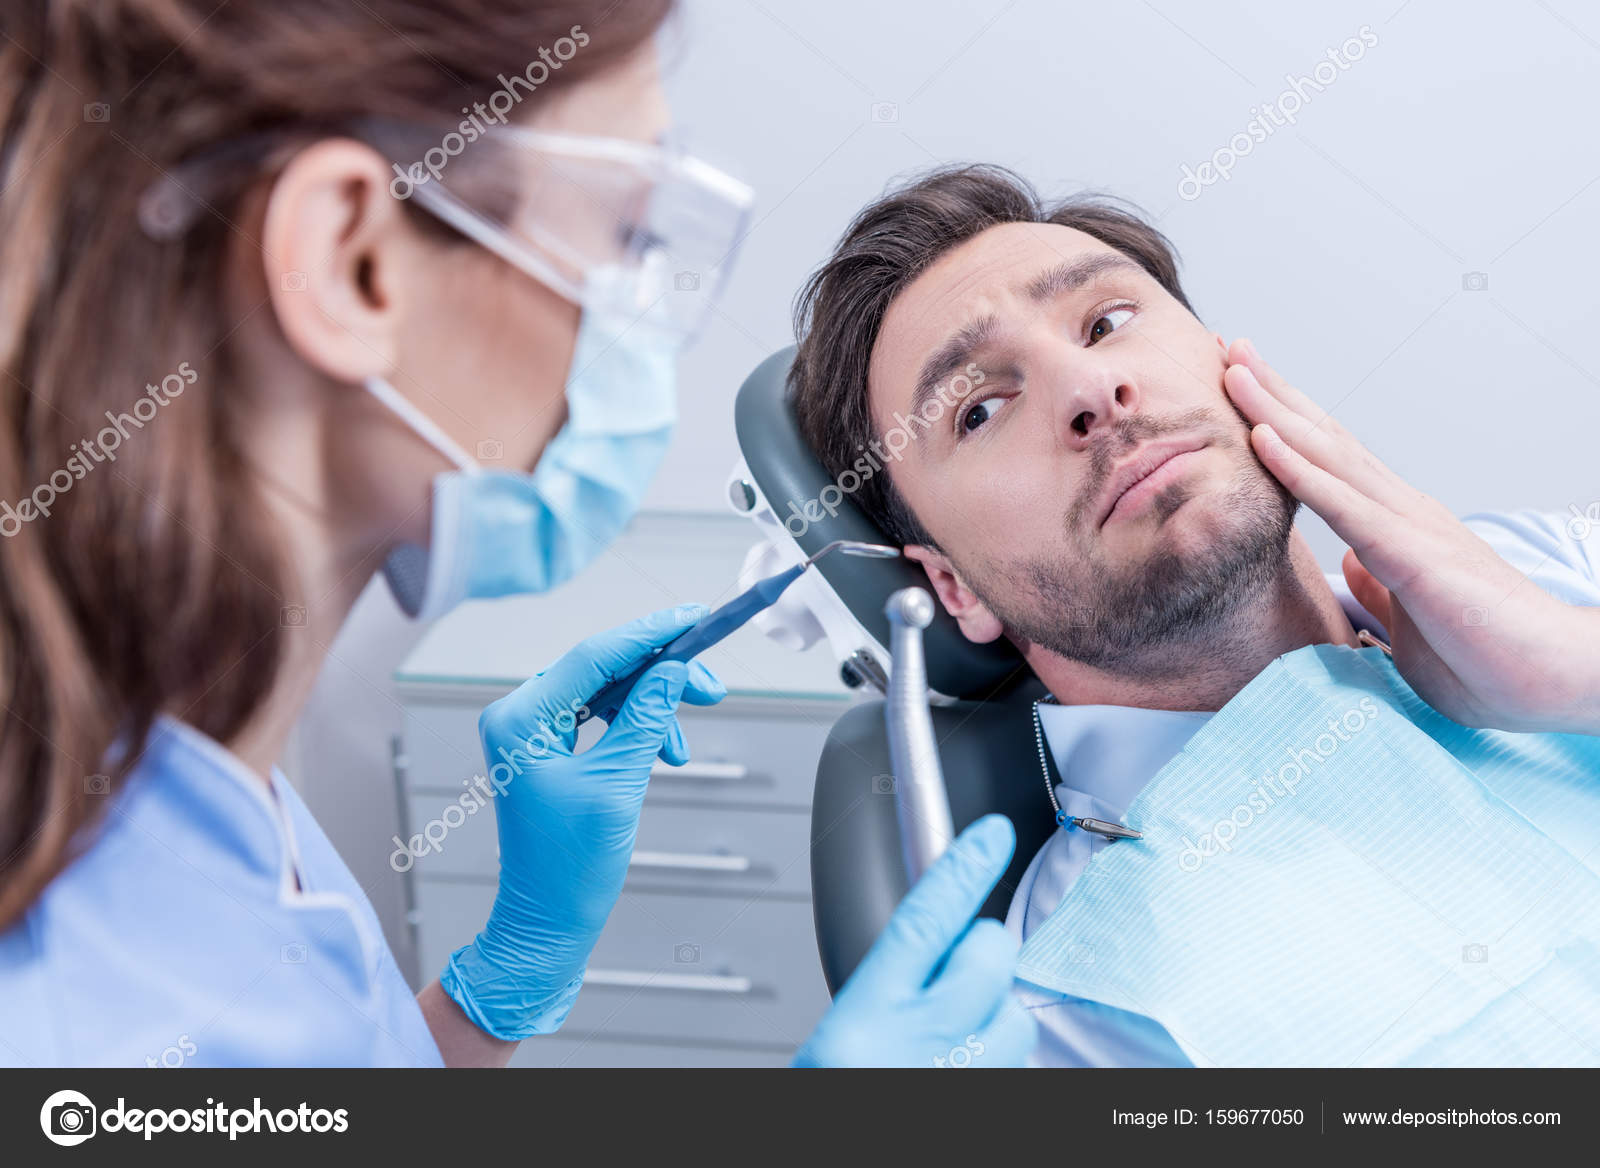 Dentist And Scared Patient Stock Photo 159677050